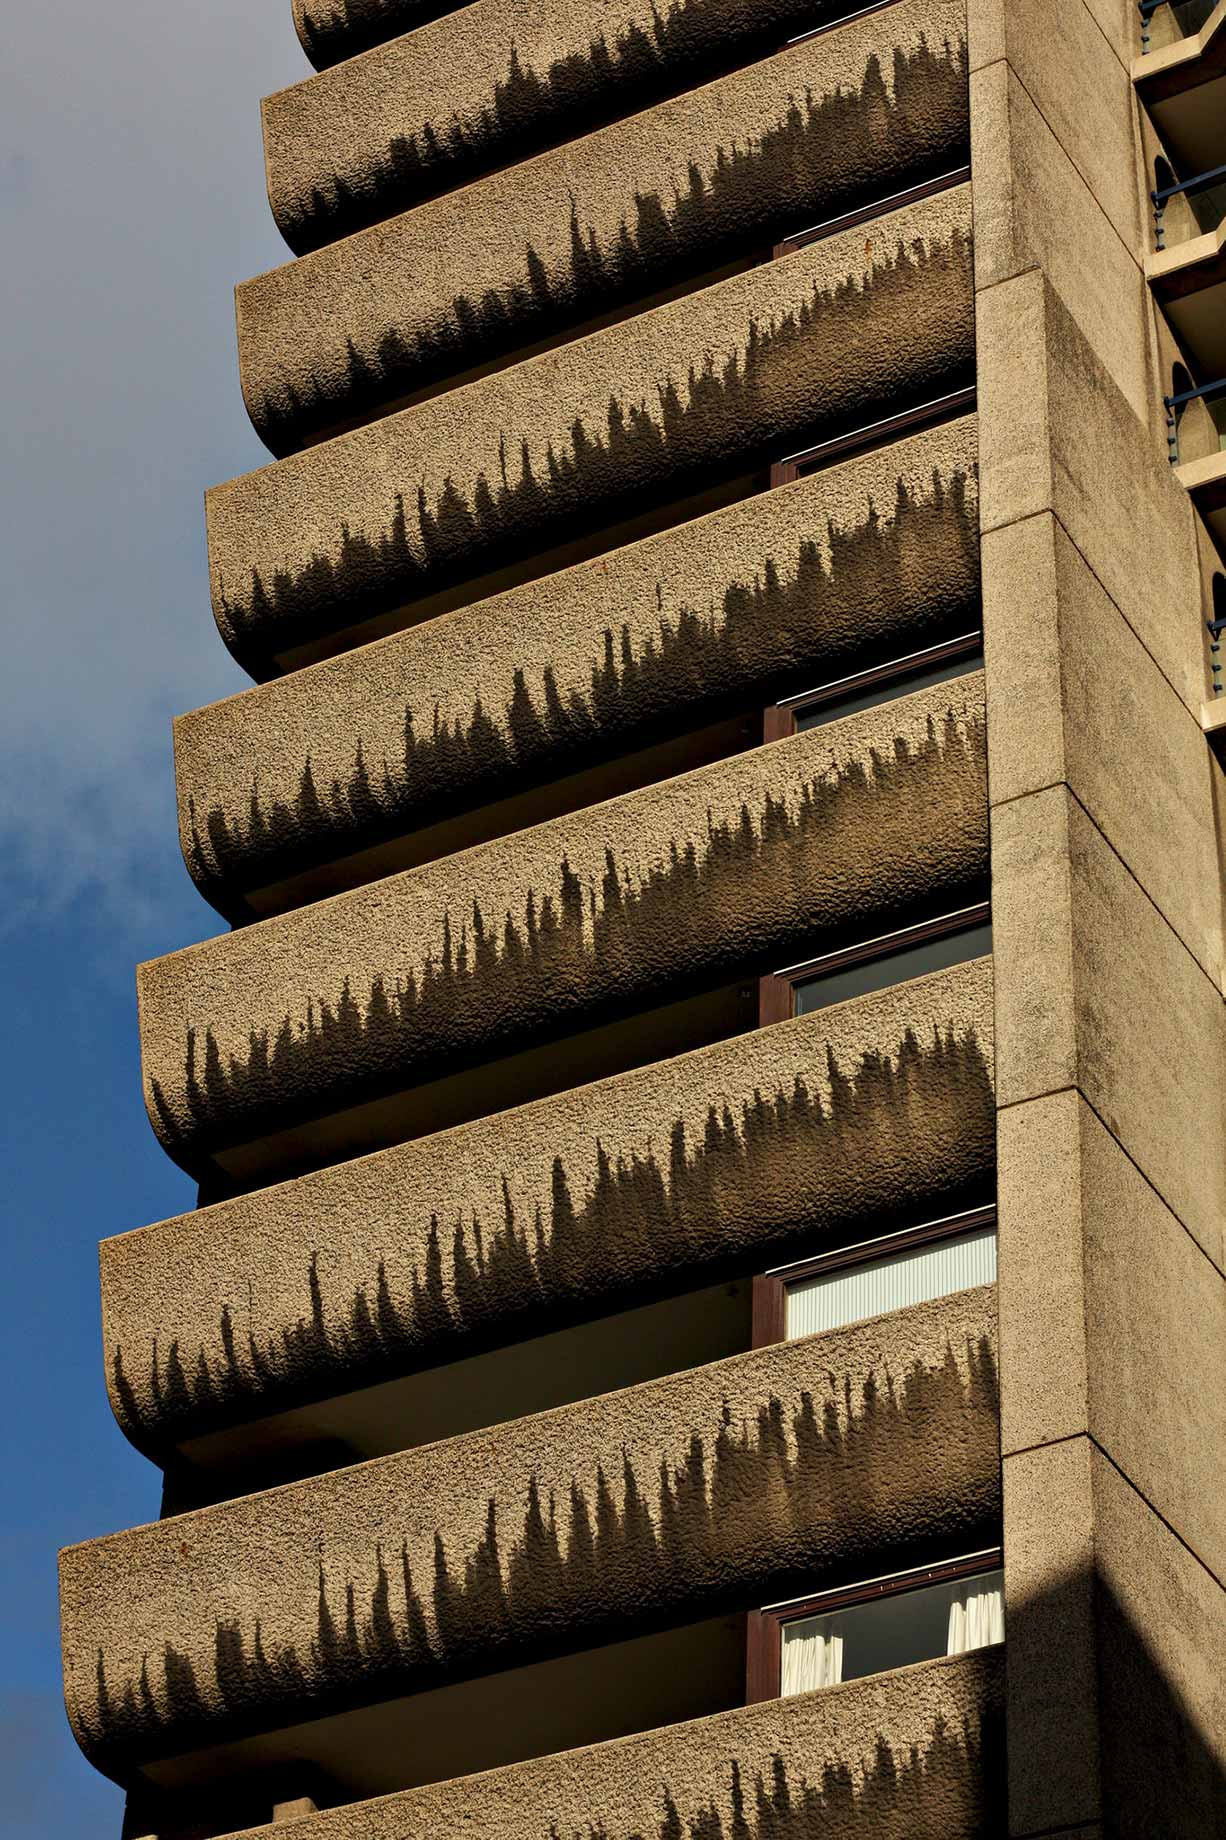 Barbican photo by abrinsky